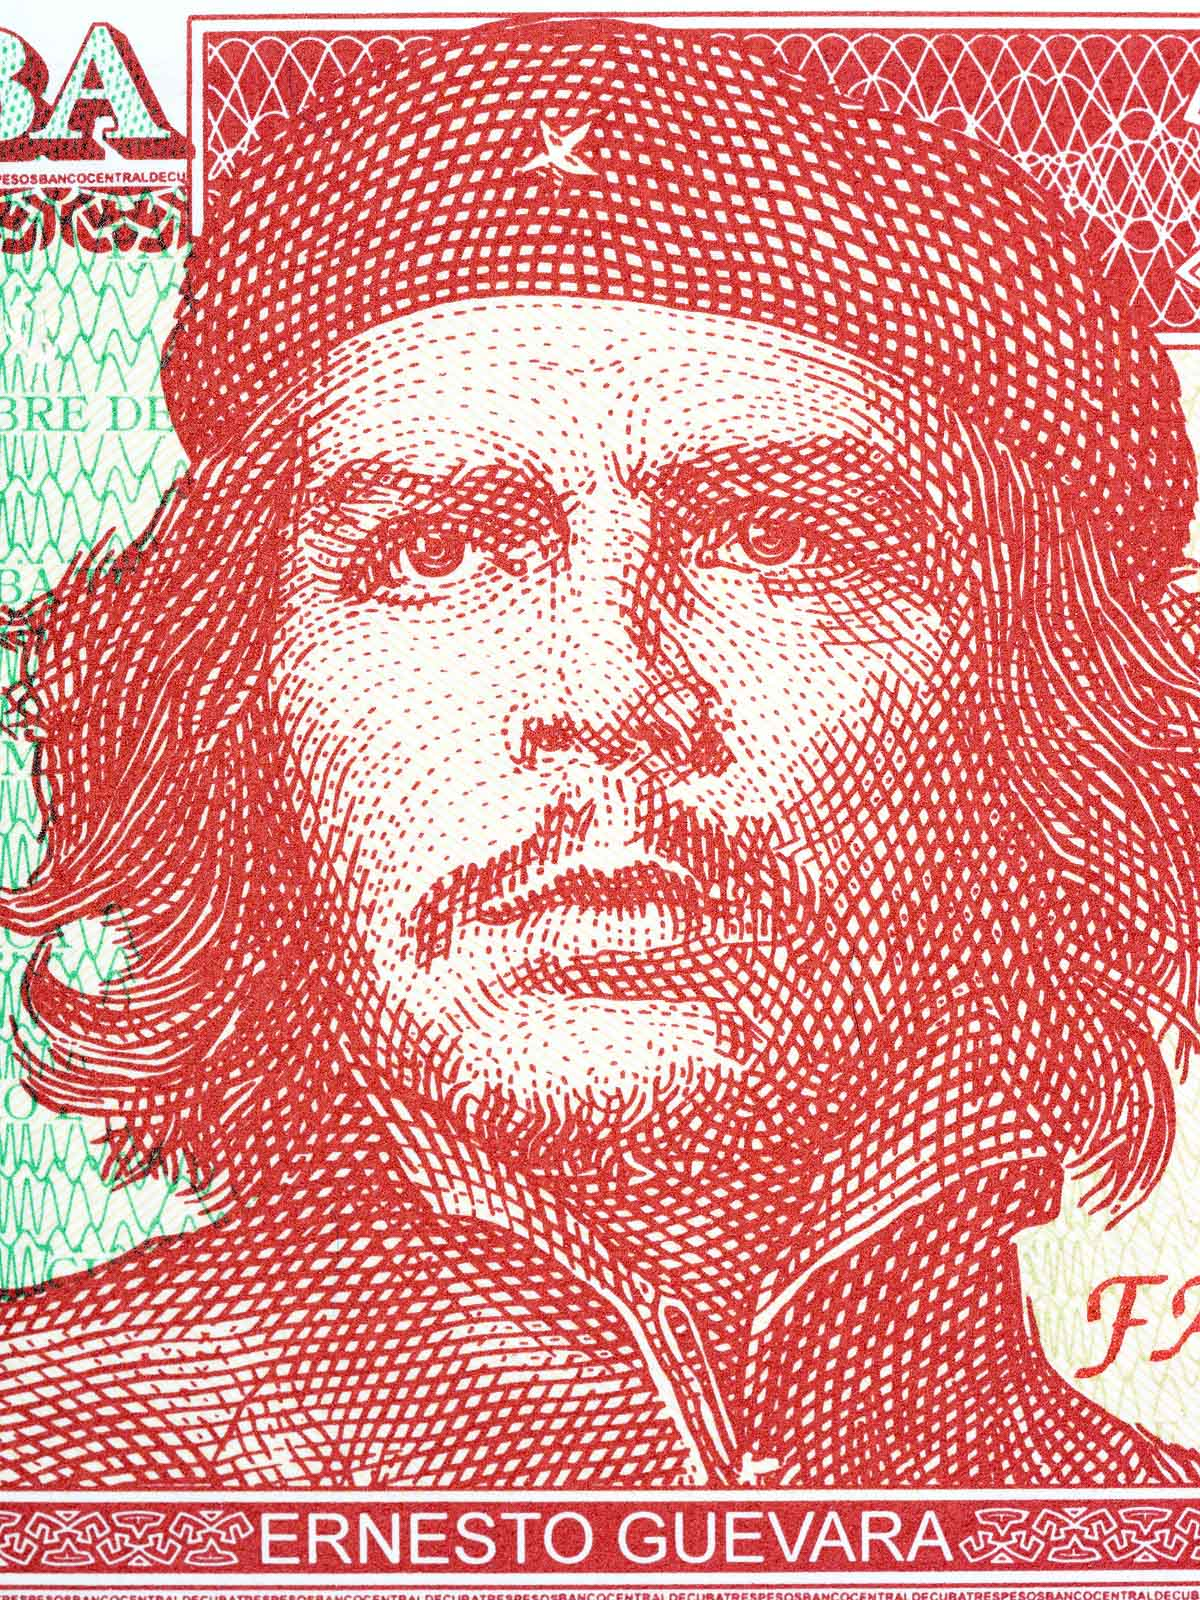 Ernesto Che Guevara is on Cuban currency, the 3 CUP bill.